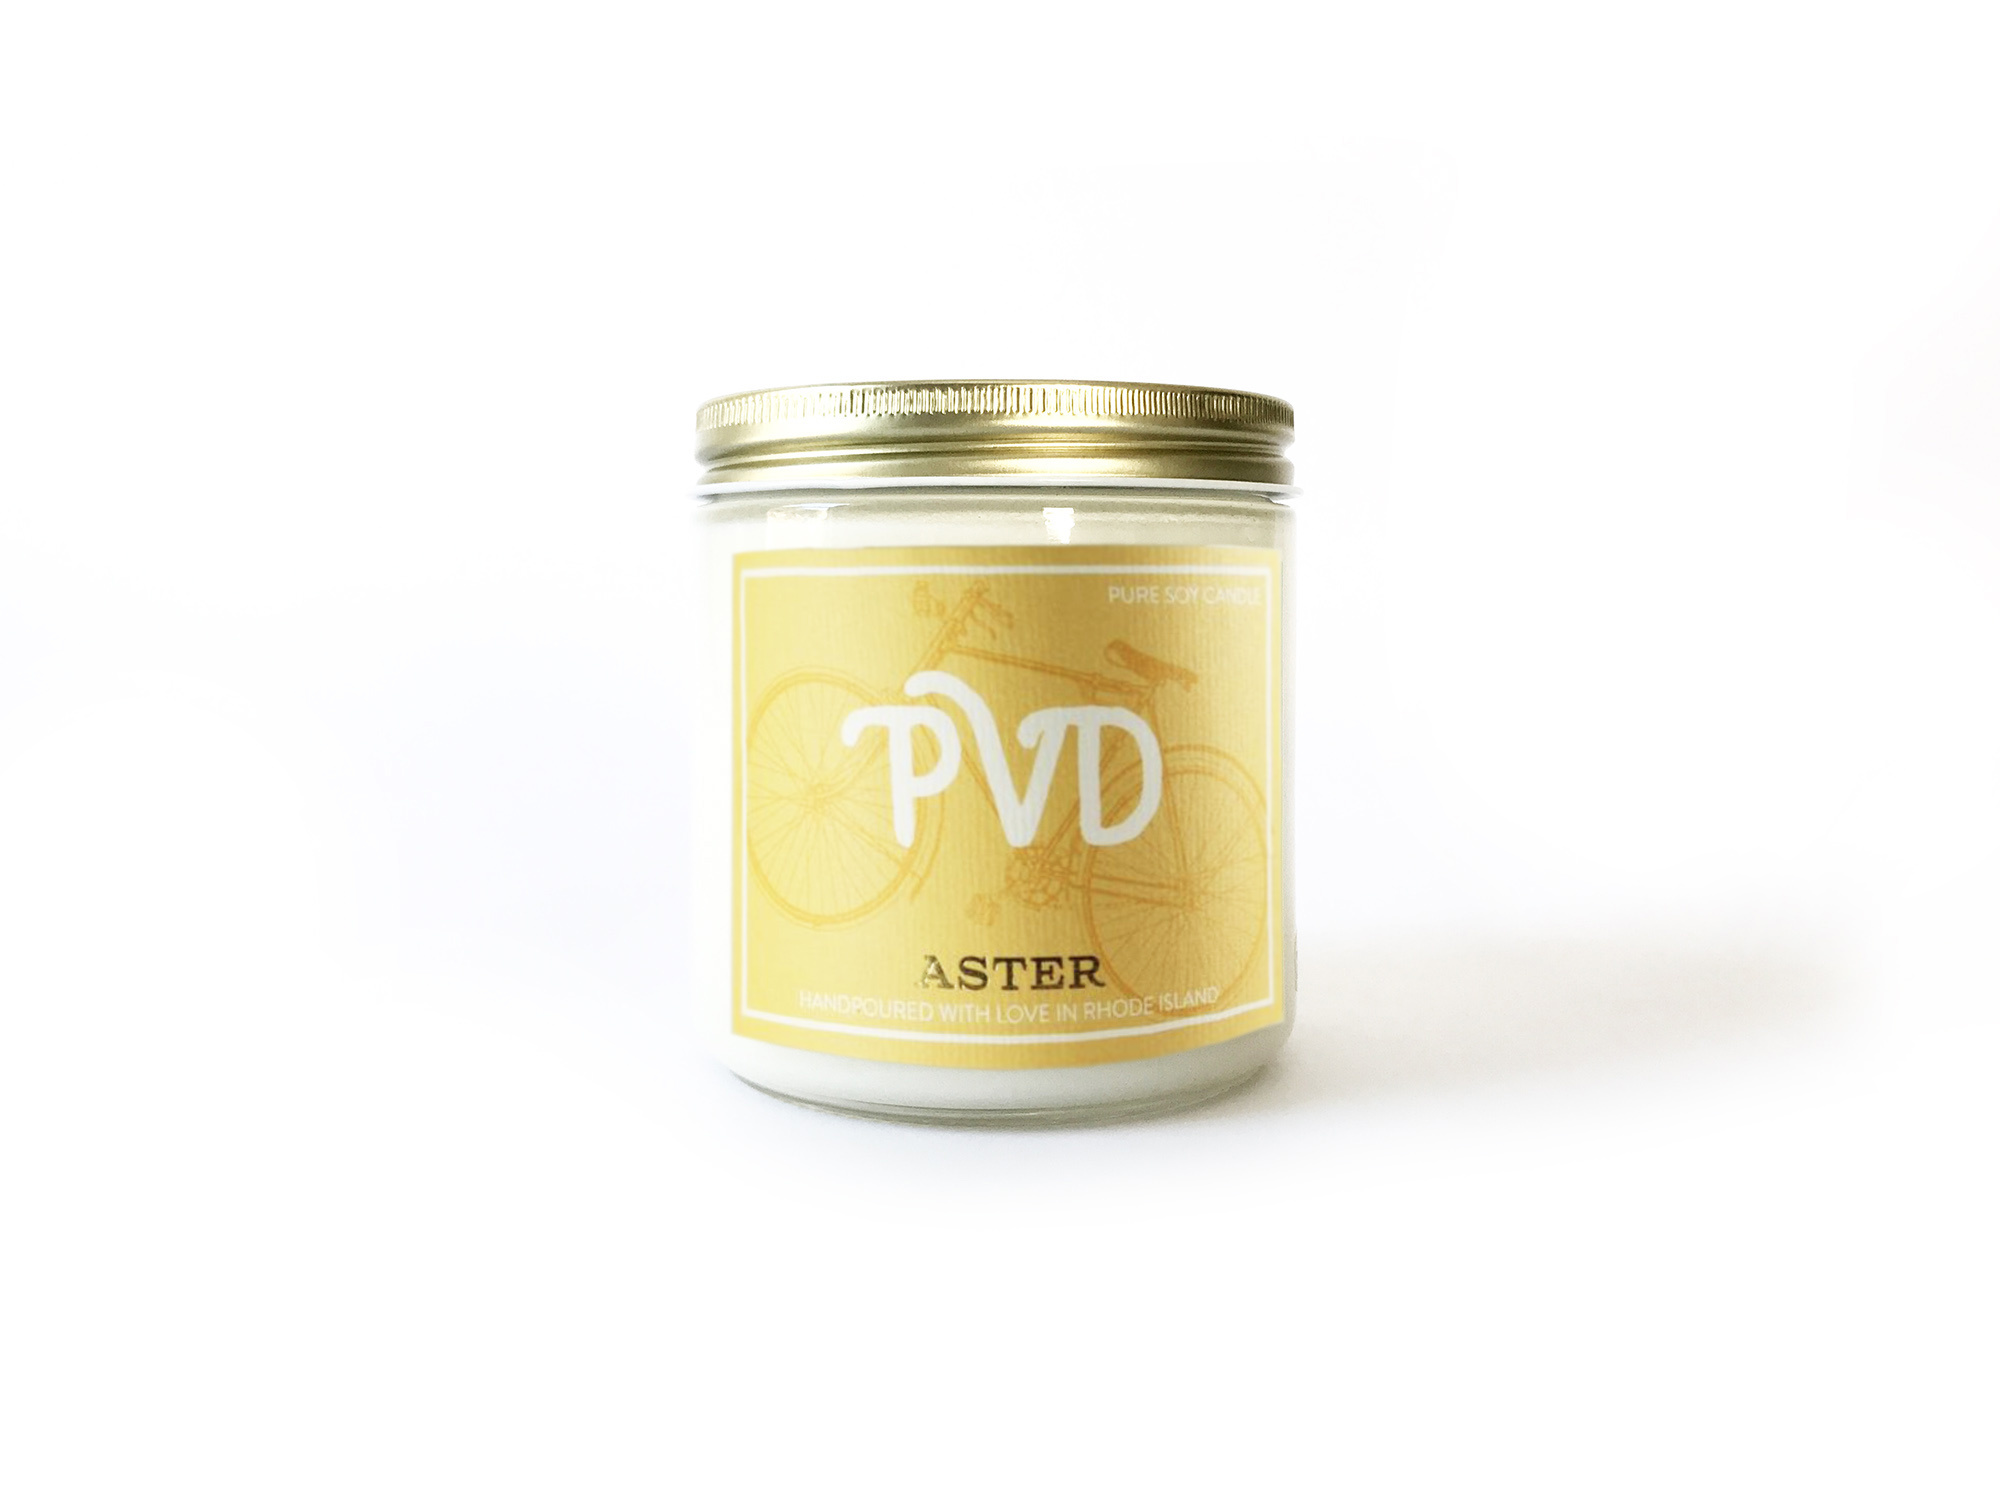 Aster Candle Glass Jars-1